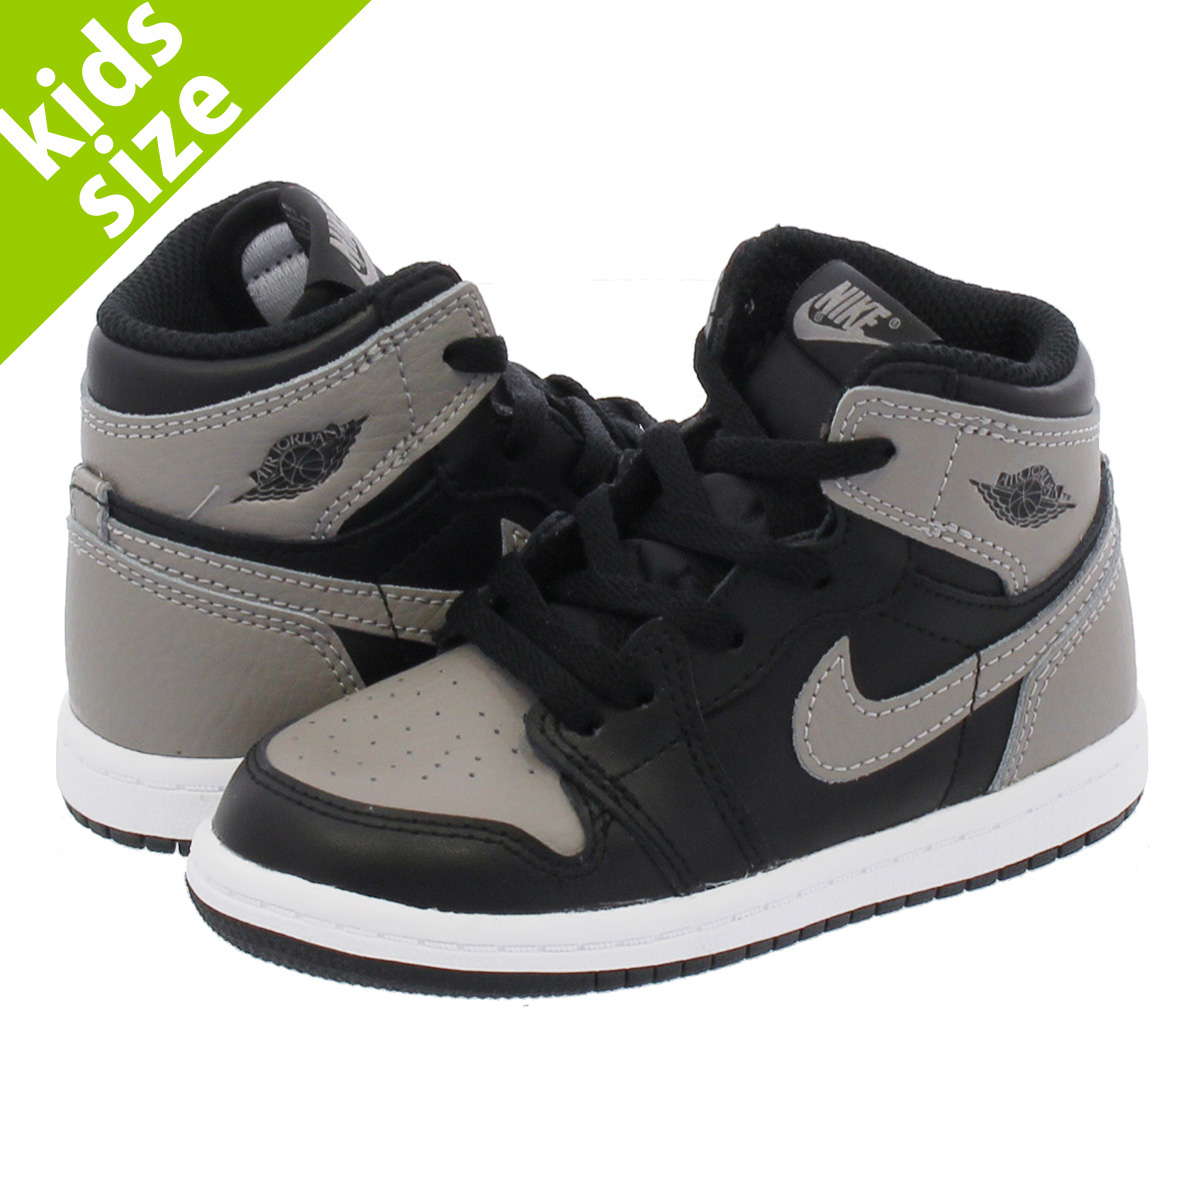 【ベビーサイズ】【8-16cm】 NIKE AIR JORDAN 1 RETRO HIGH OG BT 【SHADOW】 ナイキ エア ジョーダン 1 レトロ ハイ OG BT BLACK/MEDIUM GREY/WHITE aq2665-013